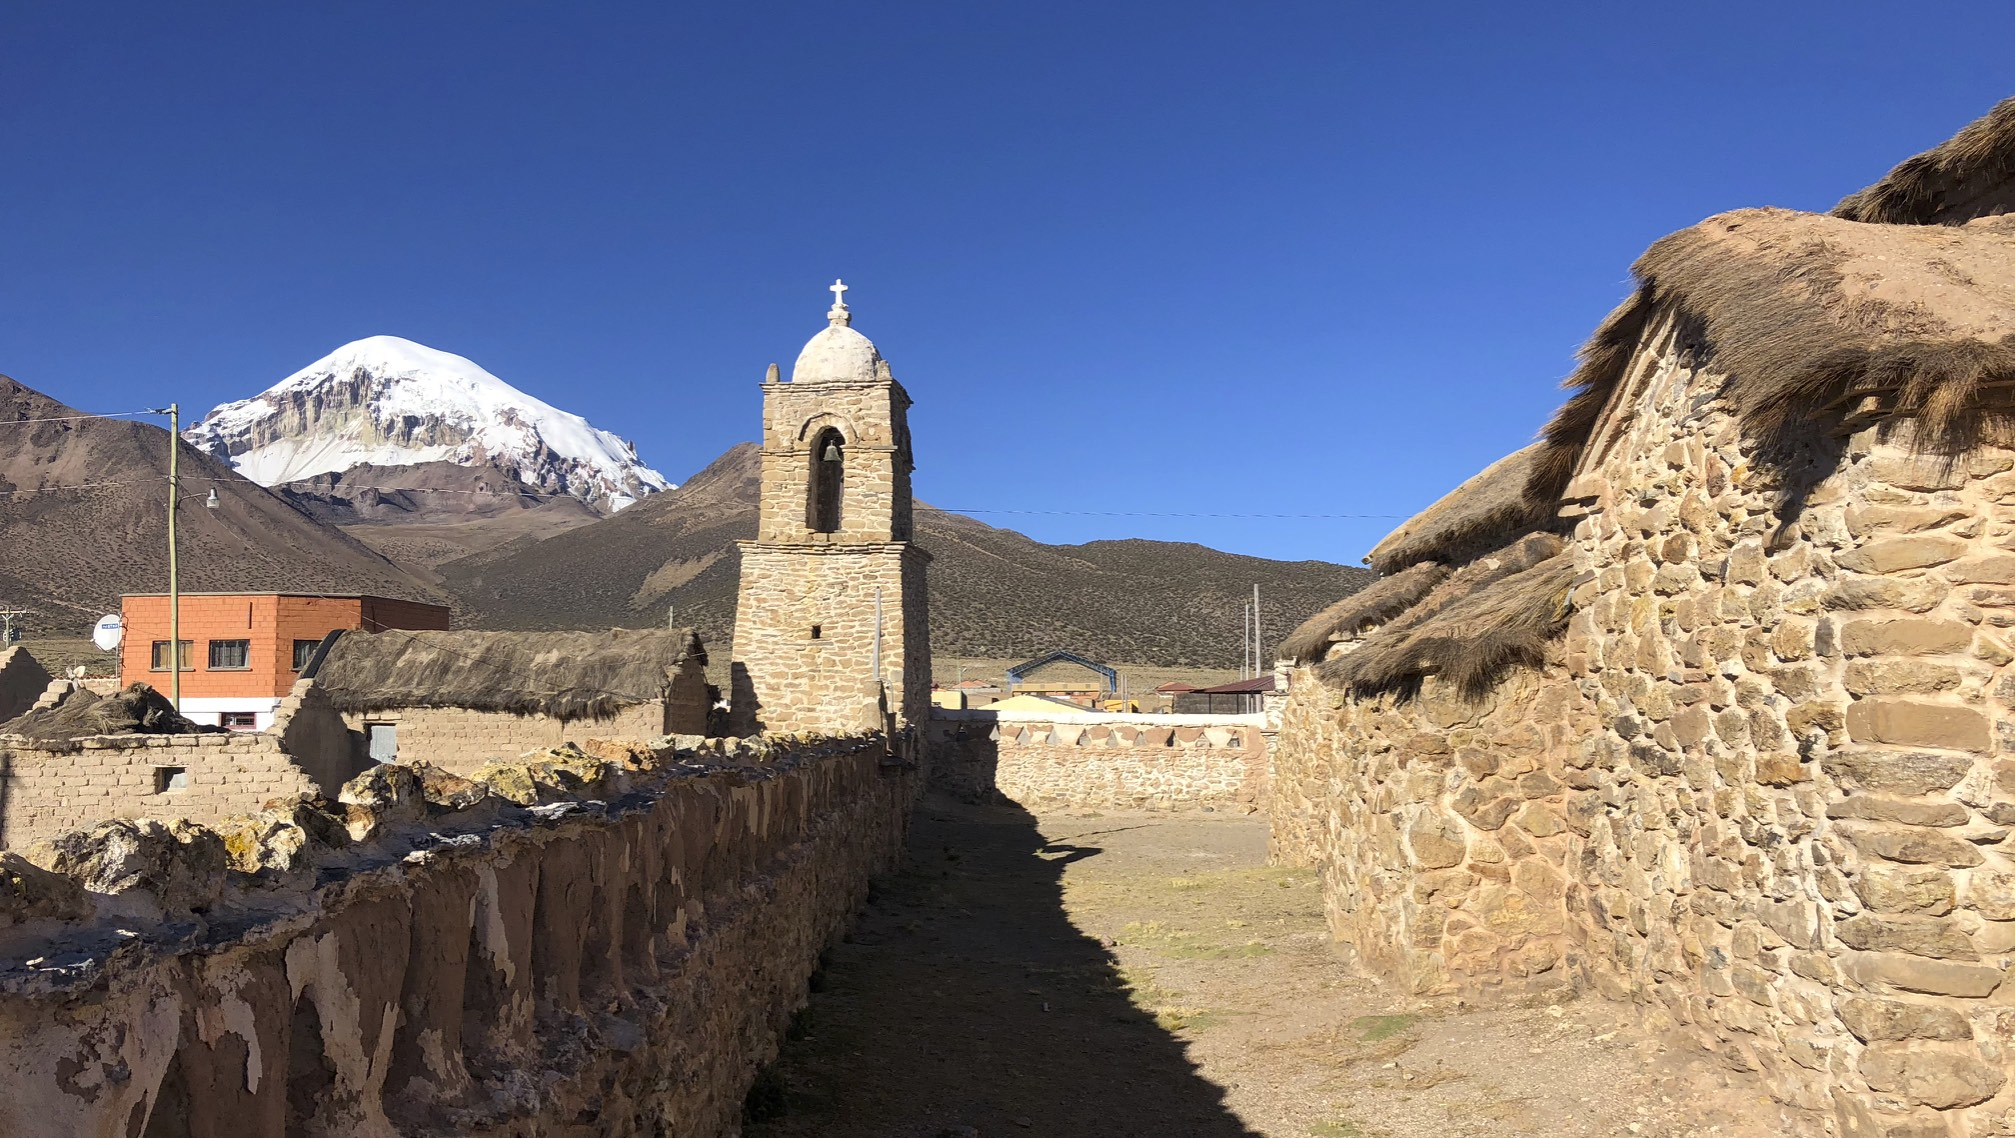 Sajama Village with Volcan Sajama in the background